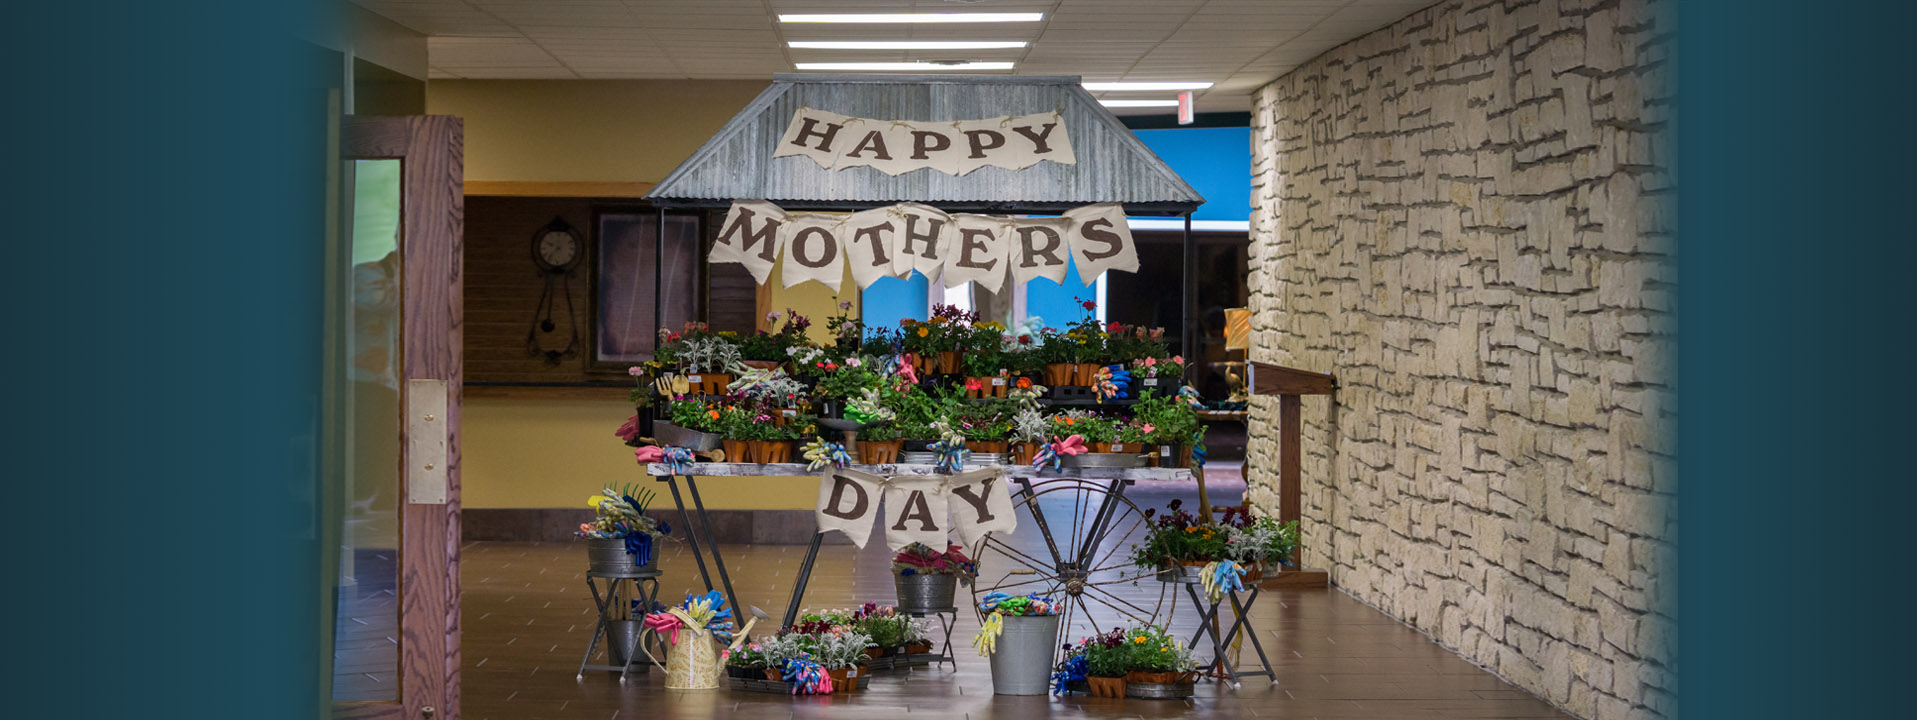 Header_image-Mothers_Day